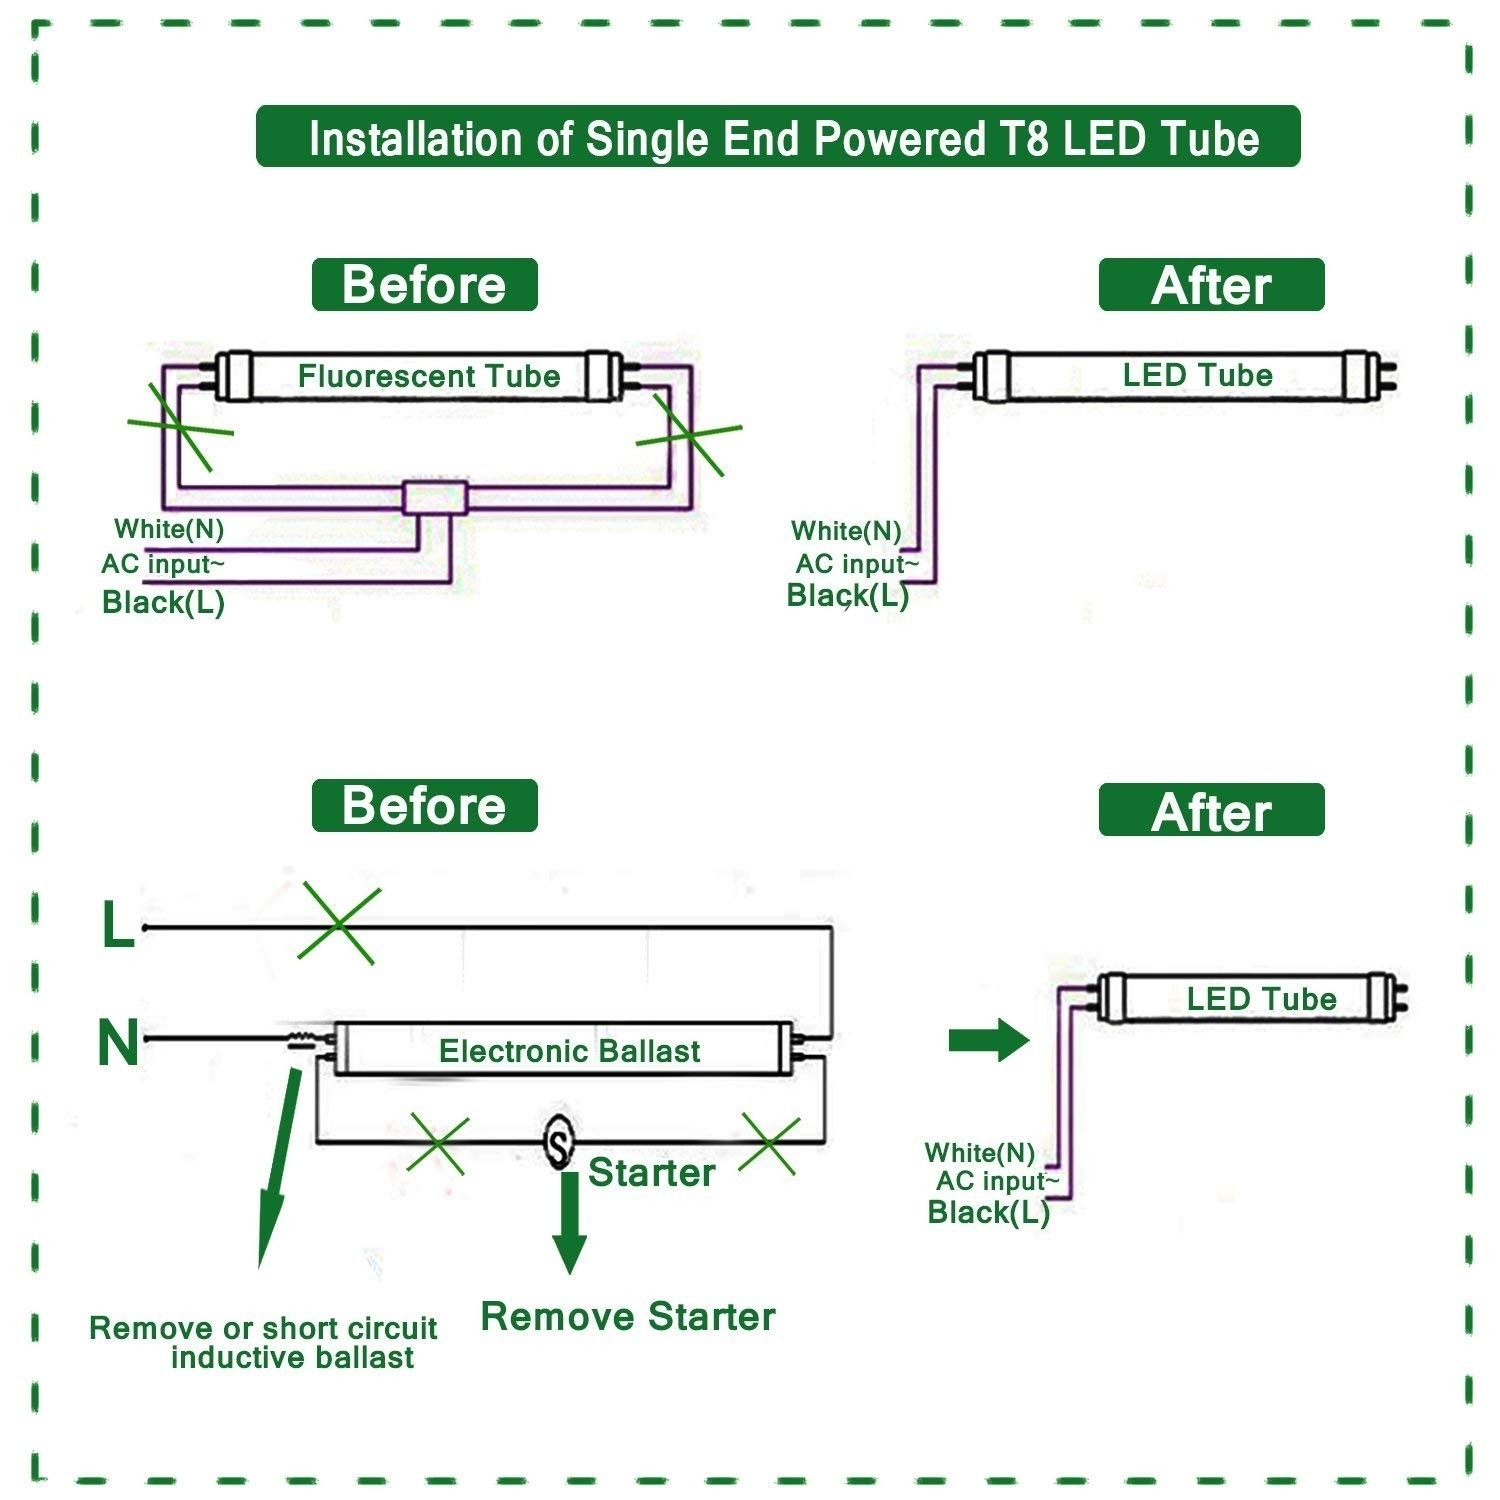 hight resolution of electronic ballast wiring diagram led option wiring diagram lithonia t8 lighting wiring diagram 110 277